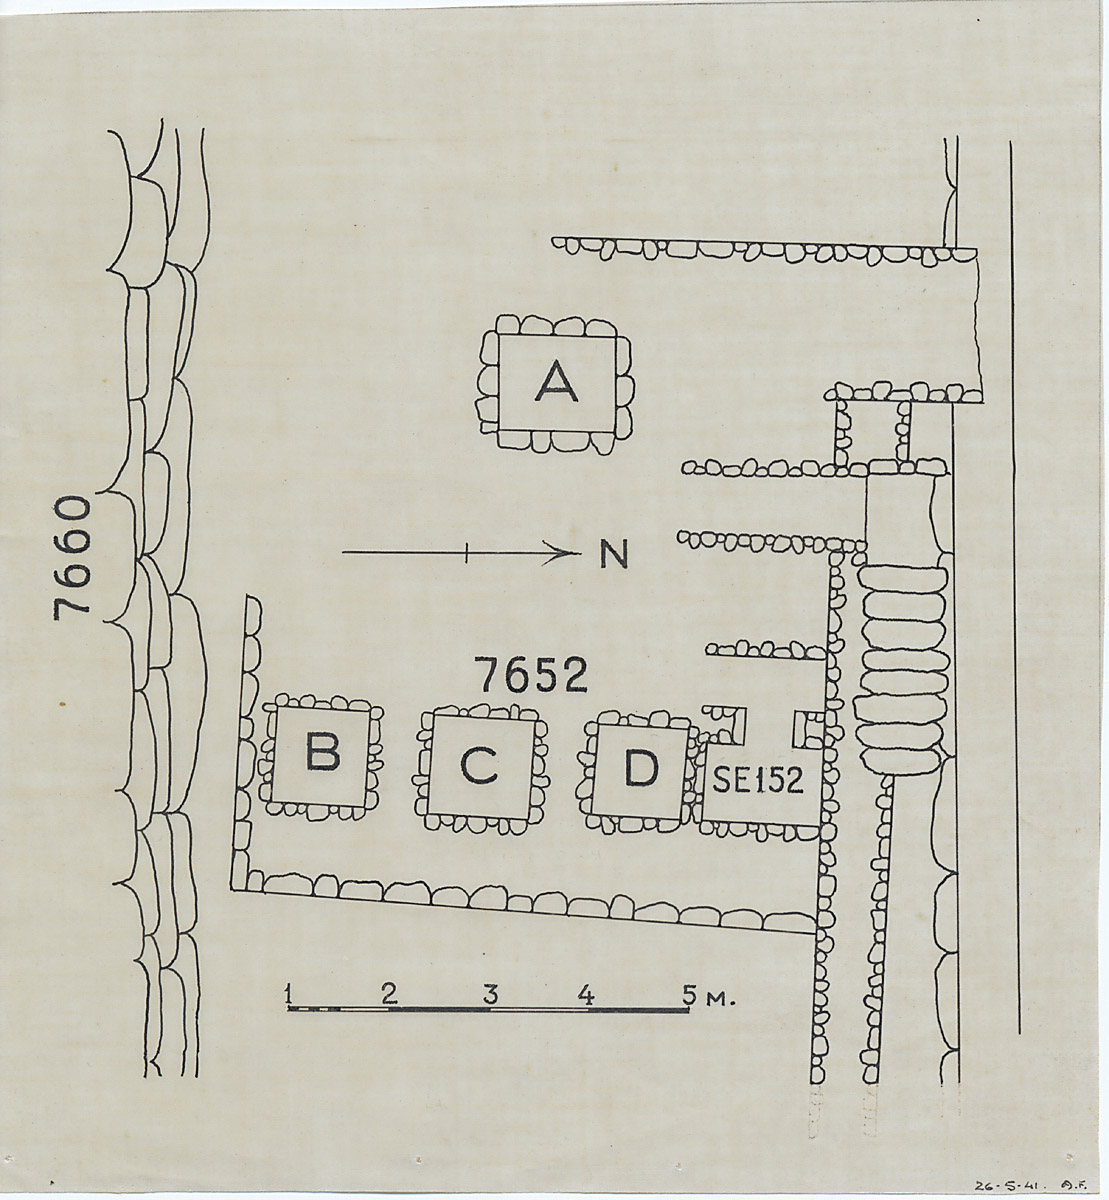 Maps and plans: Plan of G 7652 and G 7000 SE 152, with position of G 7660